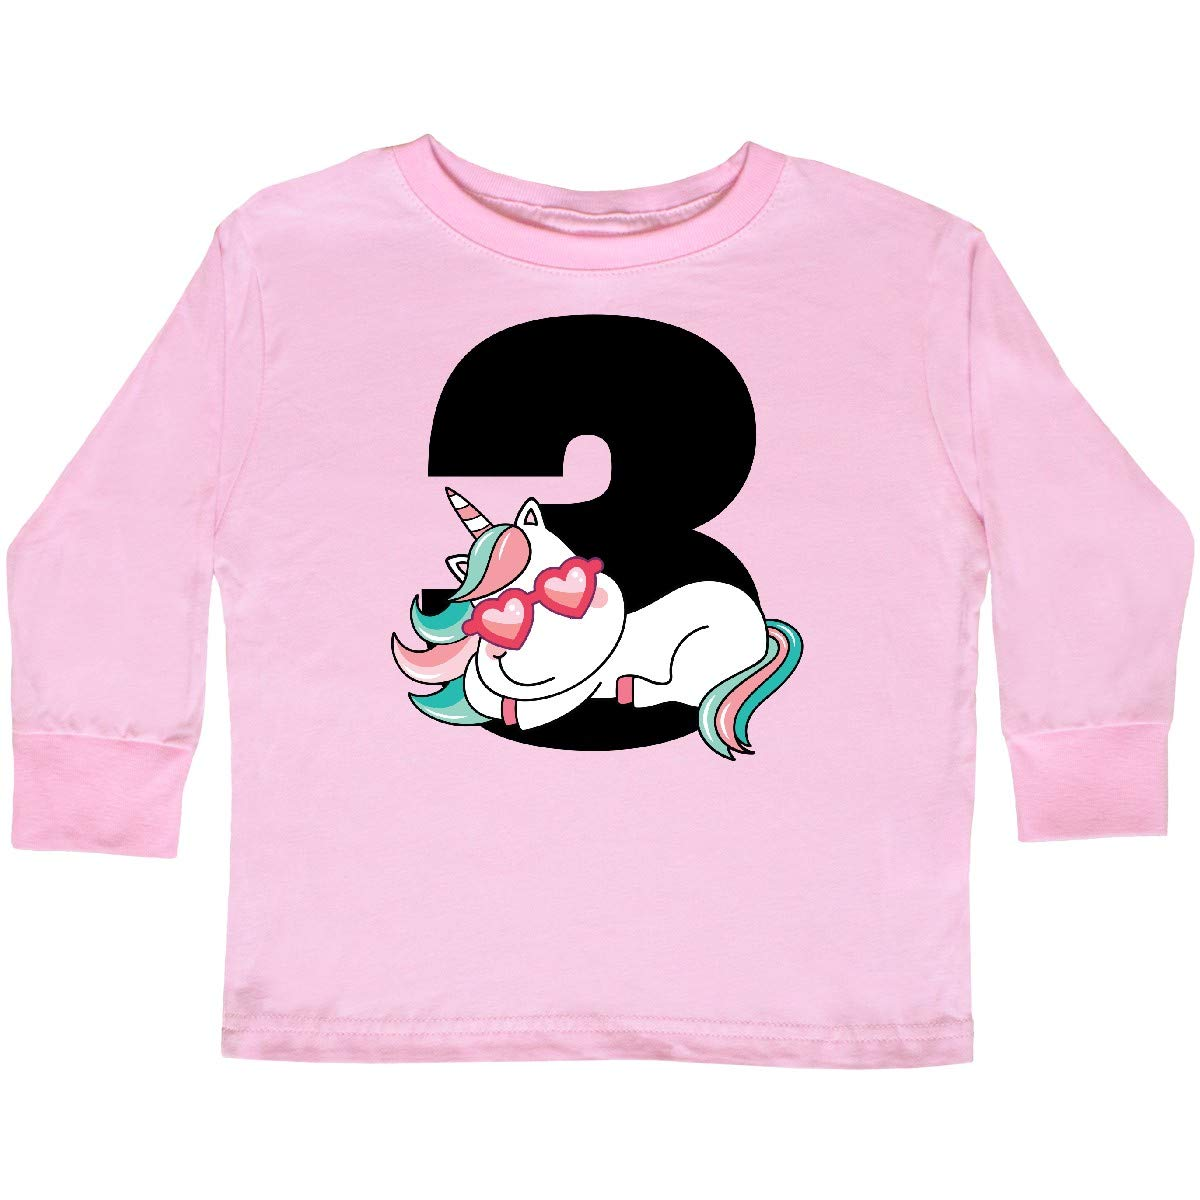 inktastic 3rd Birthday Unicorn Girls 3 Year Toddler Long Sleeve T-Shirt